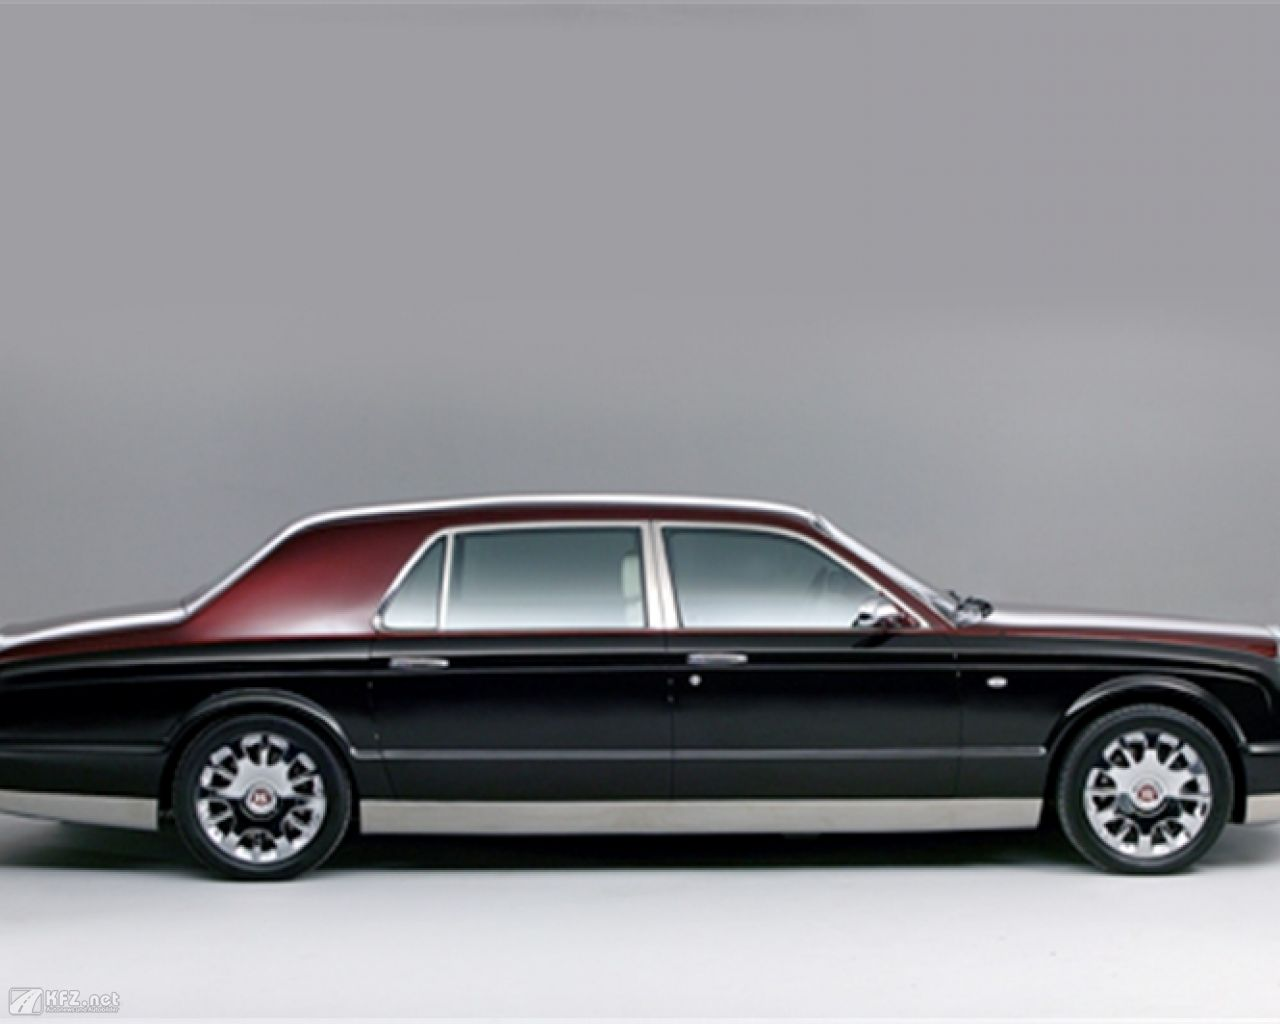 bentley-arnage-1280x1024-6